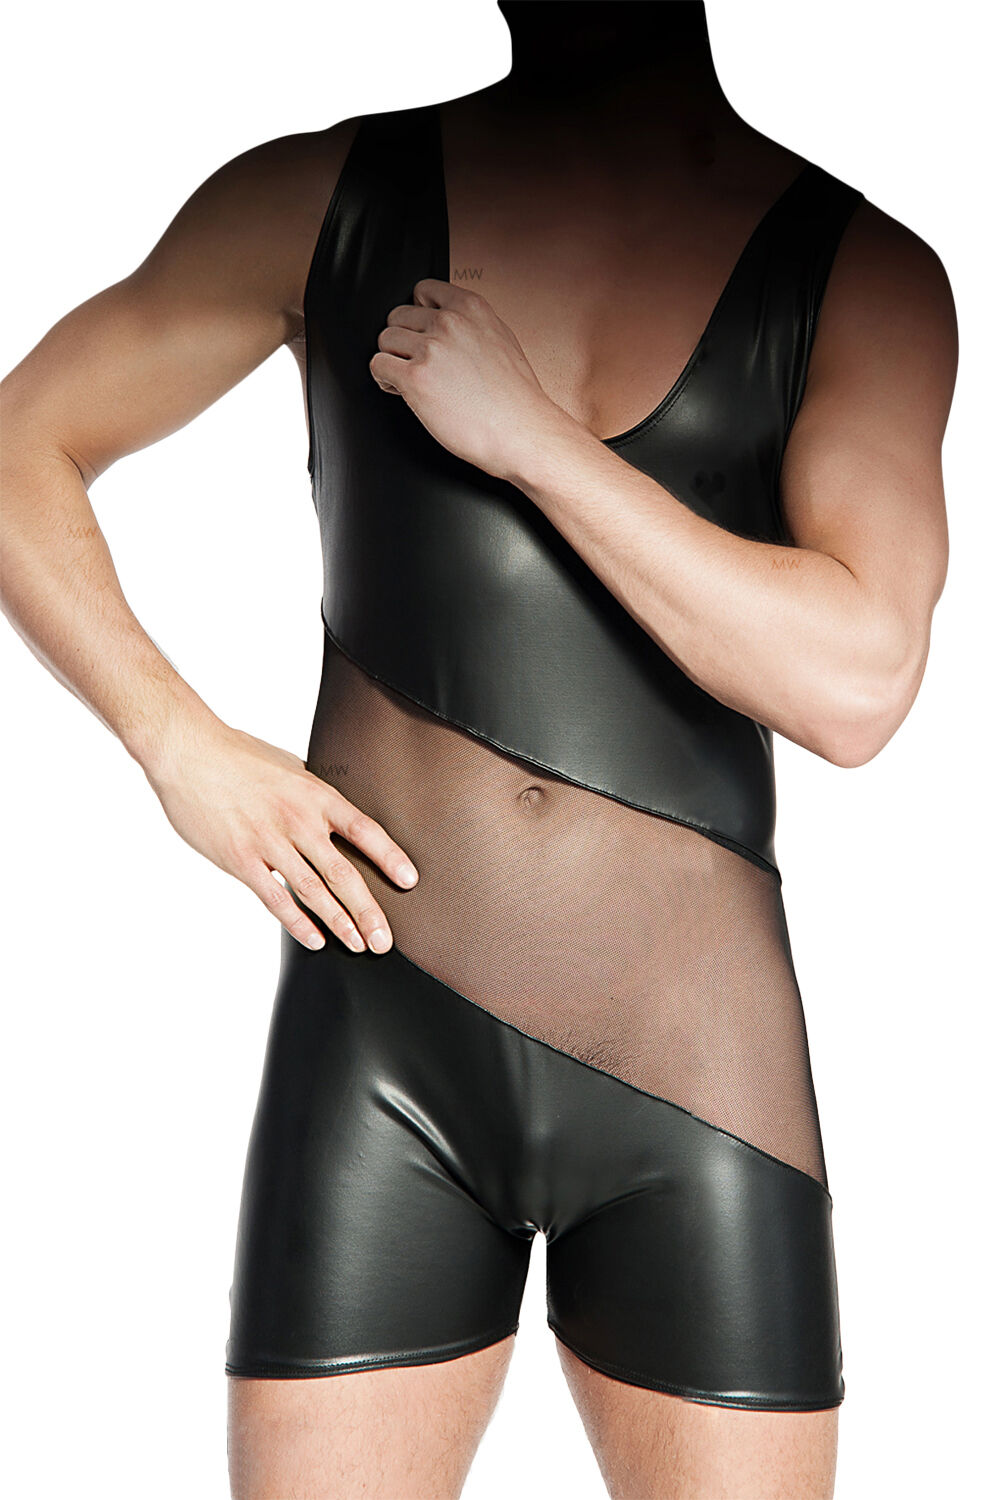 MeSeduce Dessous Herrendessous Herrenbody Bodys schwarz Clubwear sexy Wetlook